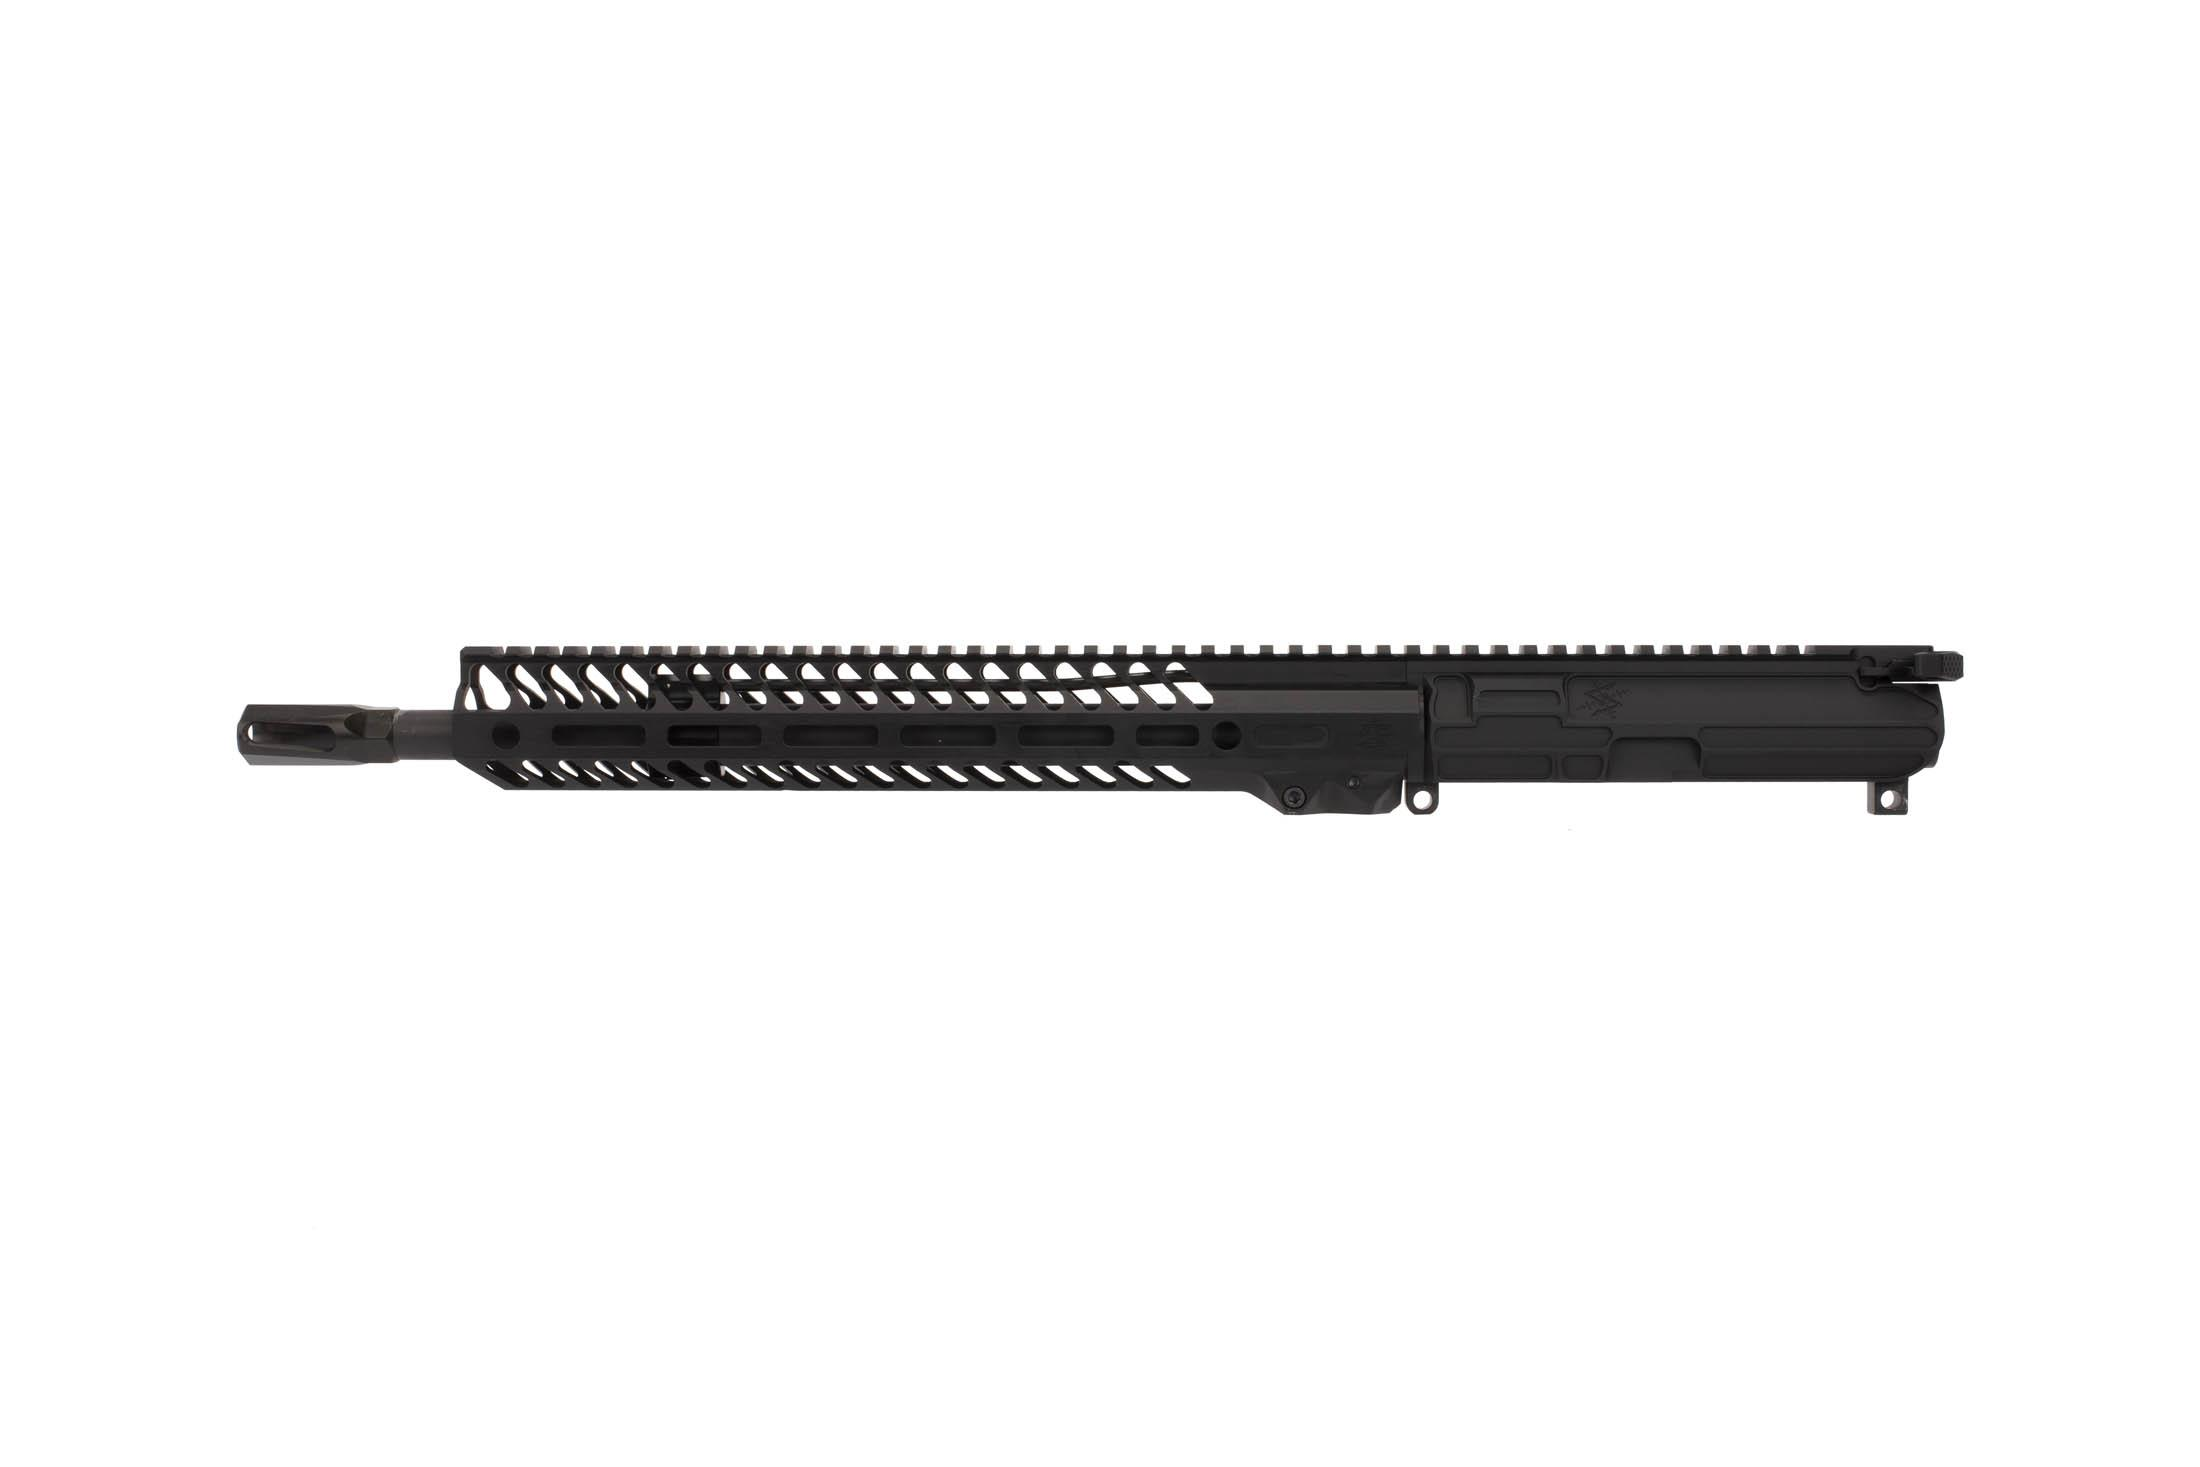 The Seekins Precision 14.5 NX14 Complete Upper is chambered in .223 Wylde with a 1:8 twist